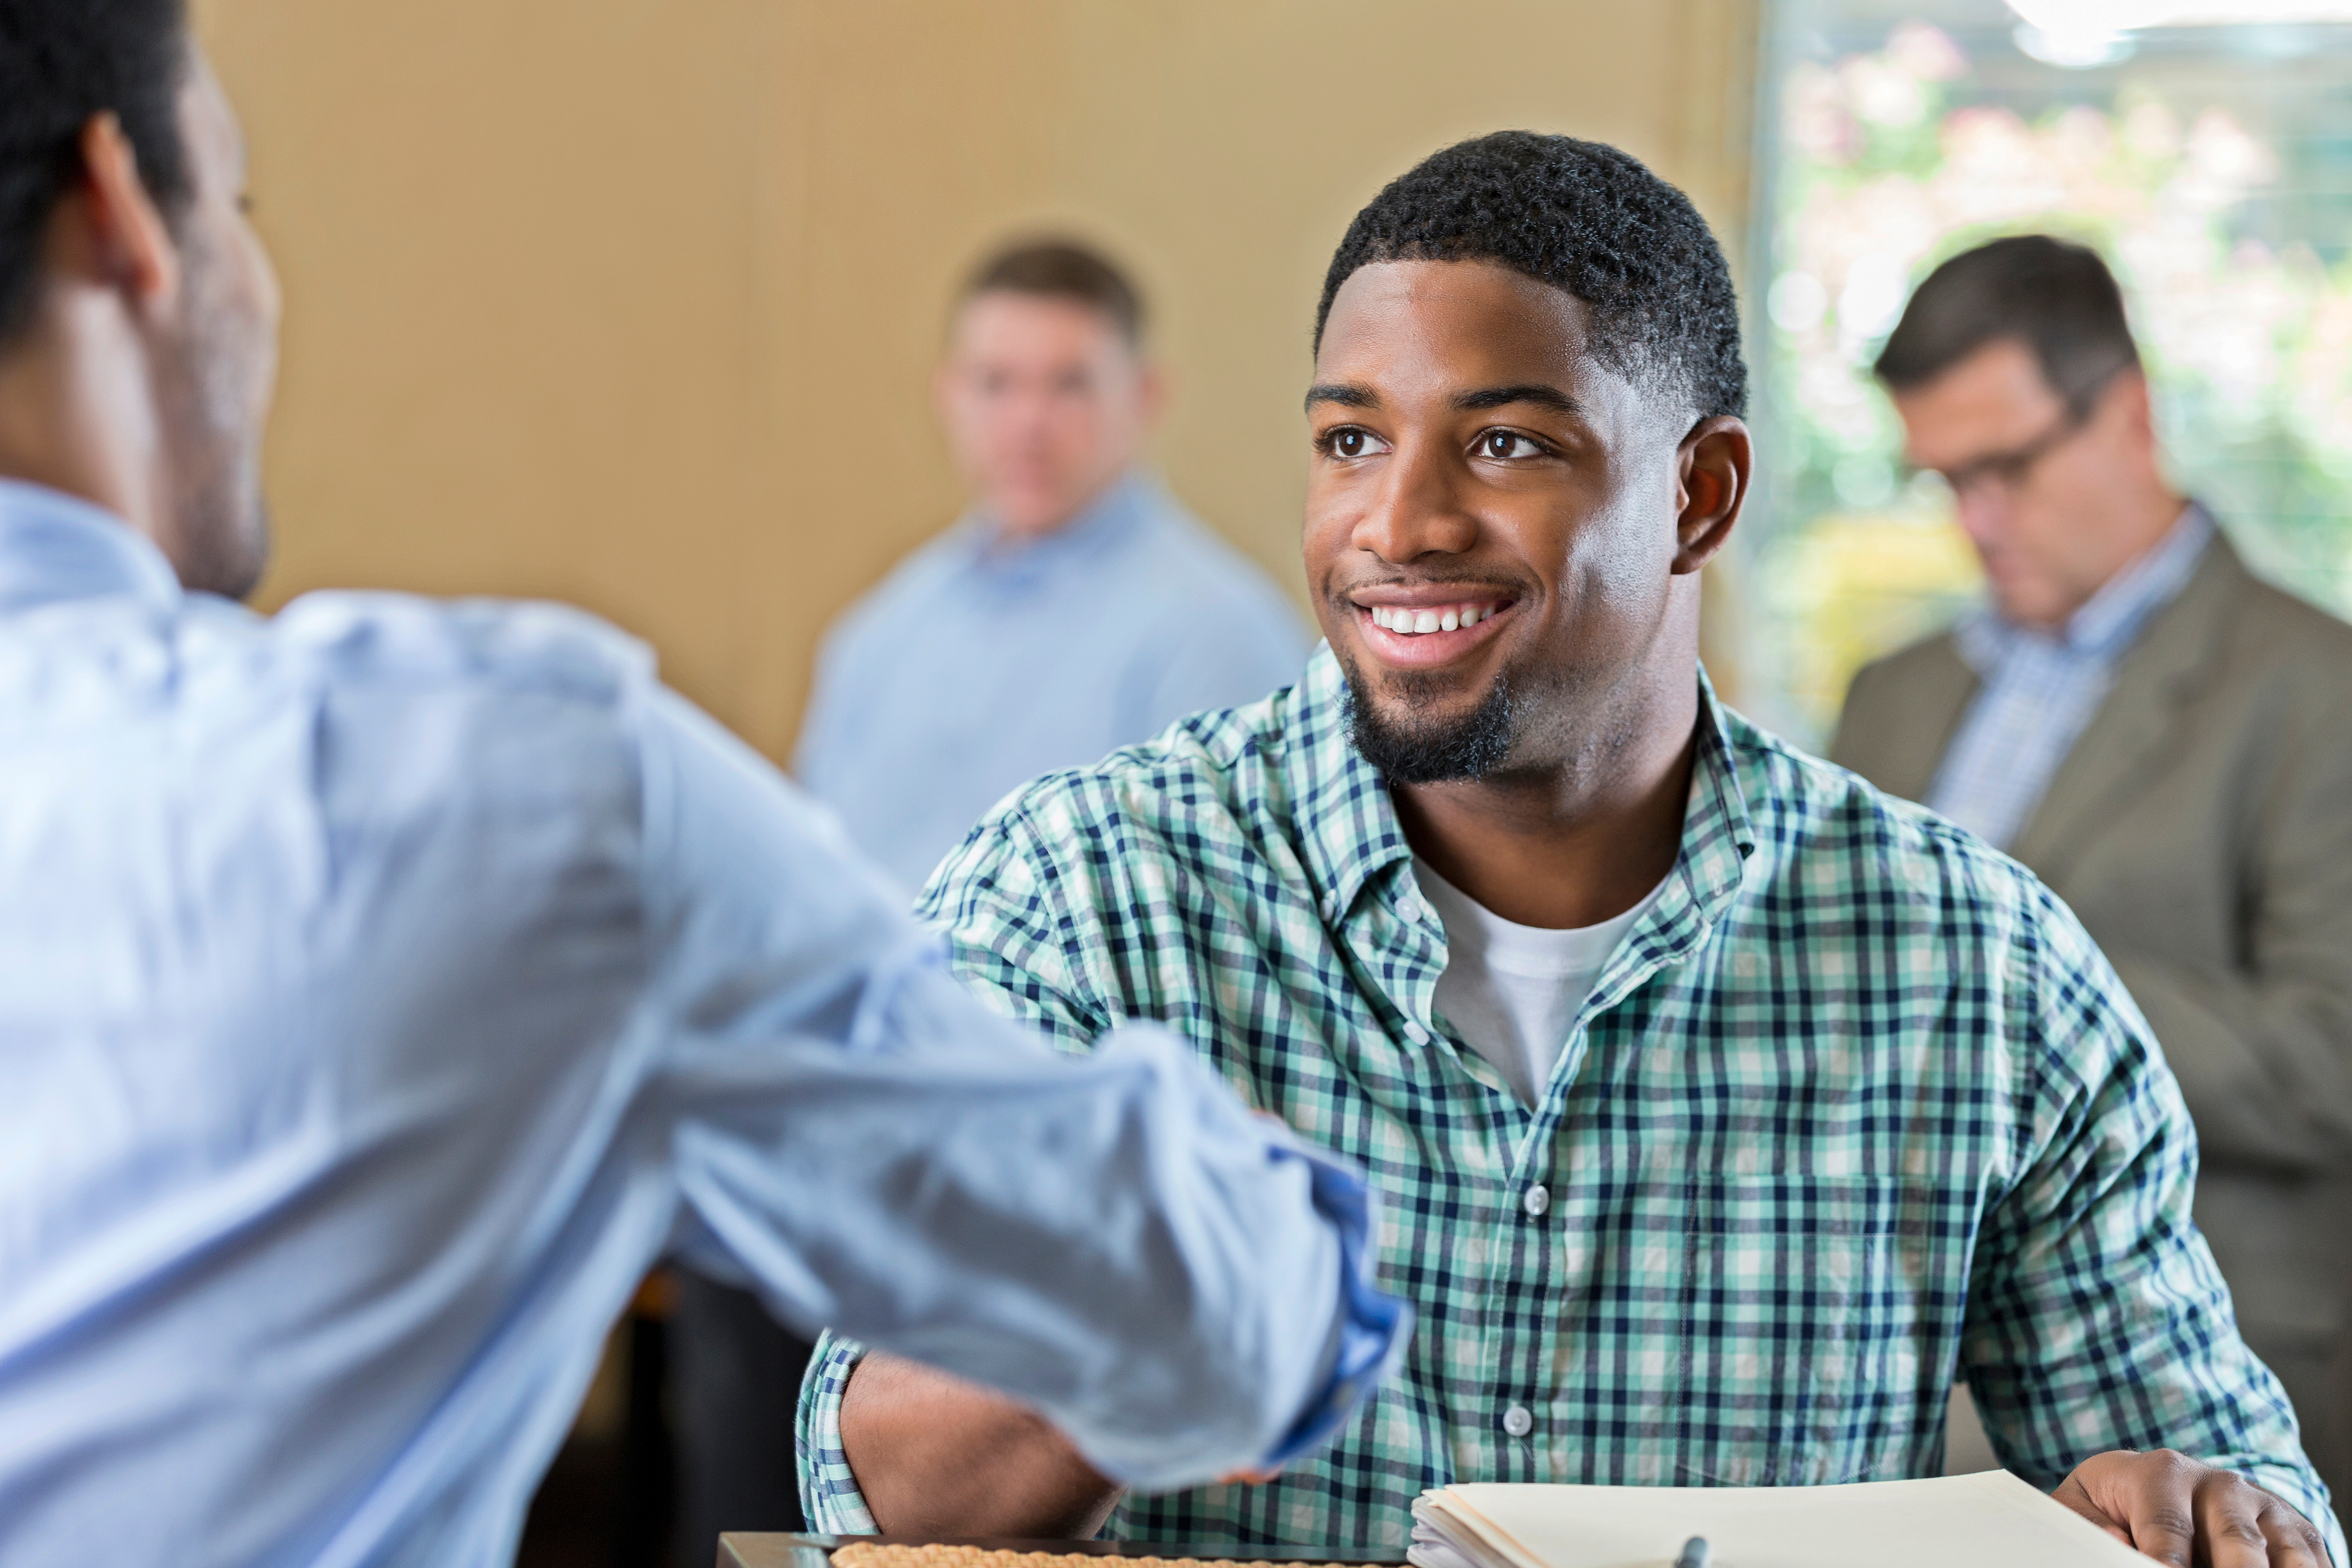 Handsome-young-African-American-man-at-job-interview-598529560_5760x3840.jpeg